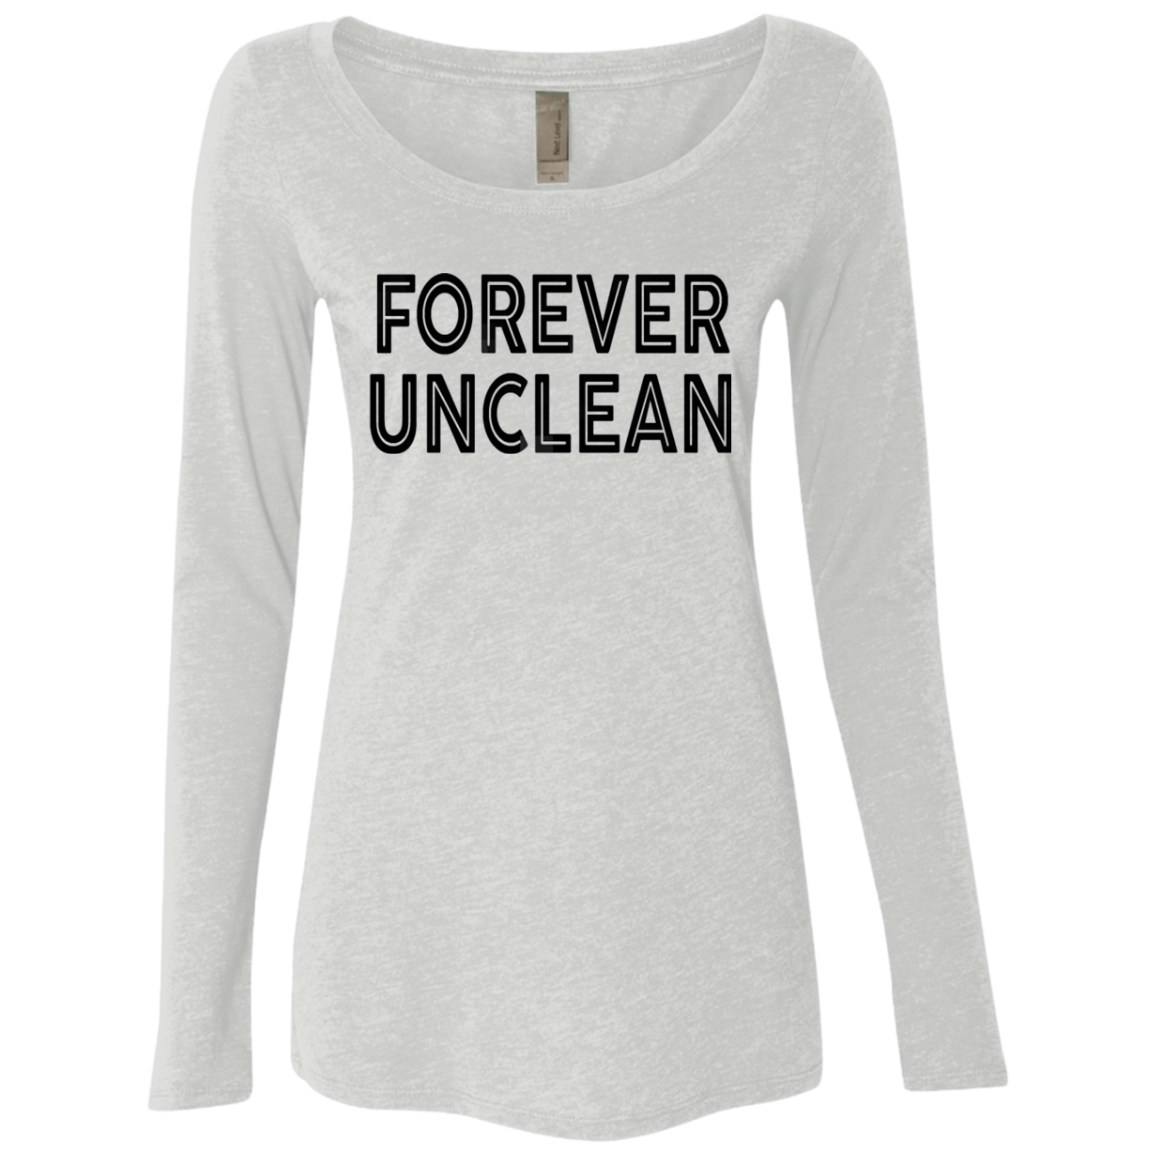 Forever Unclean Women's Long Sleeve Tee